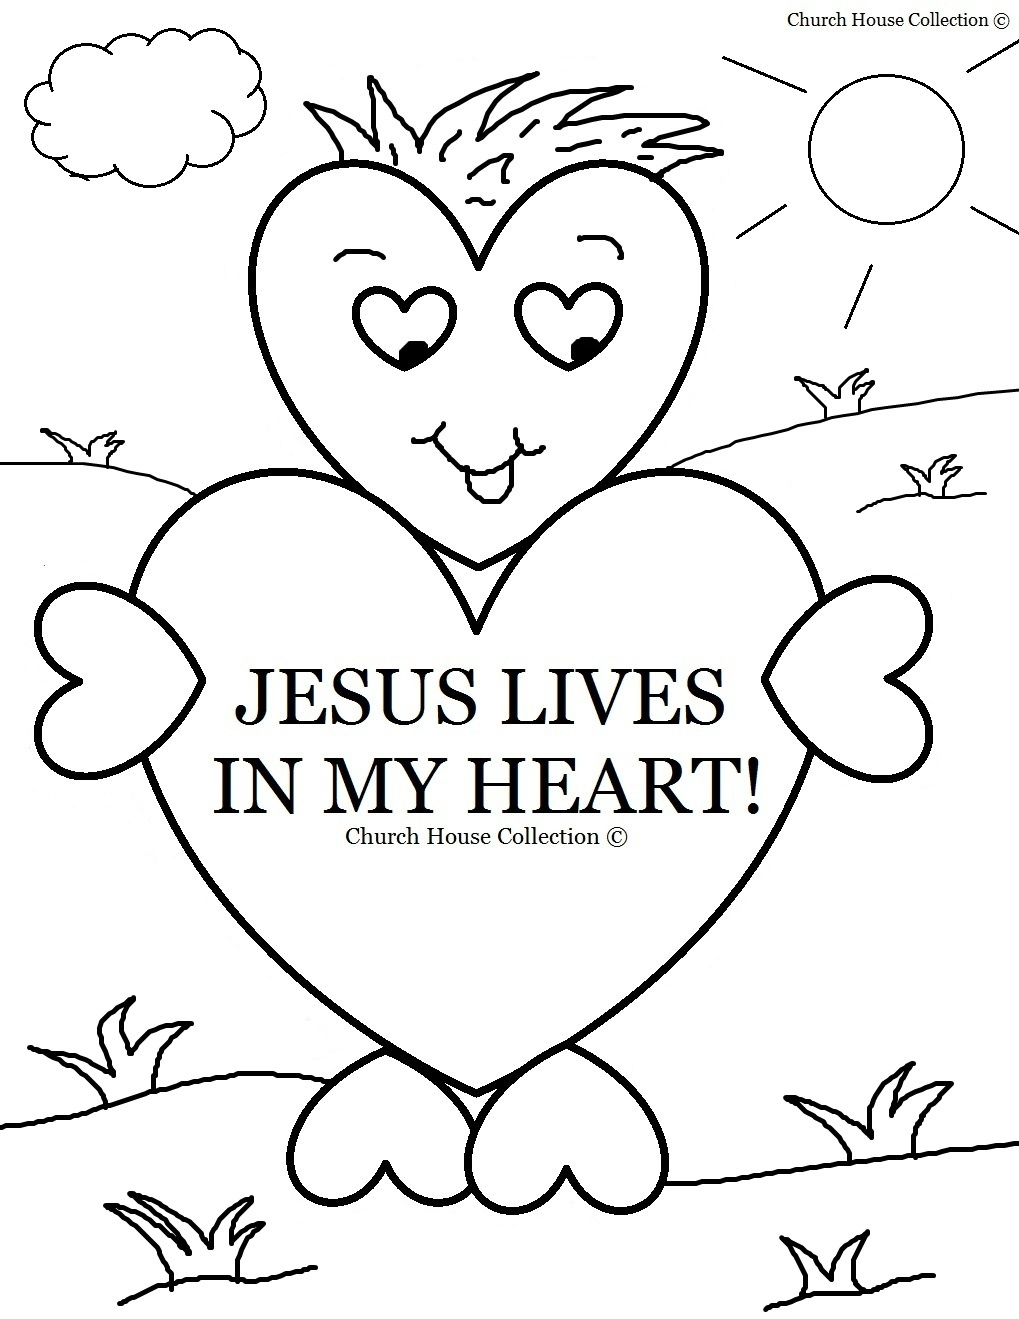 Free Printable Bible Coloring Pages For Preschoolers - Free Printable Bible Coloring Pages